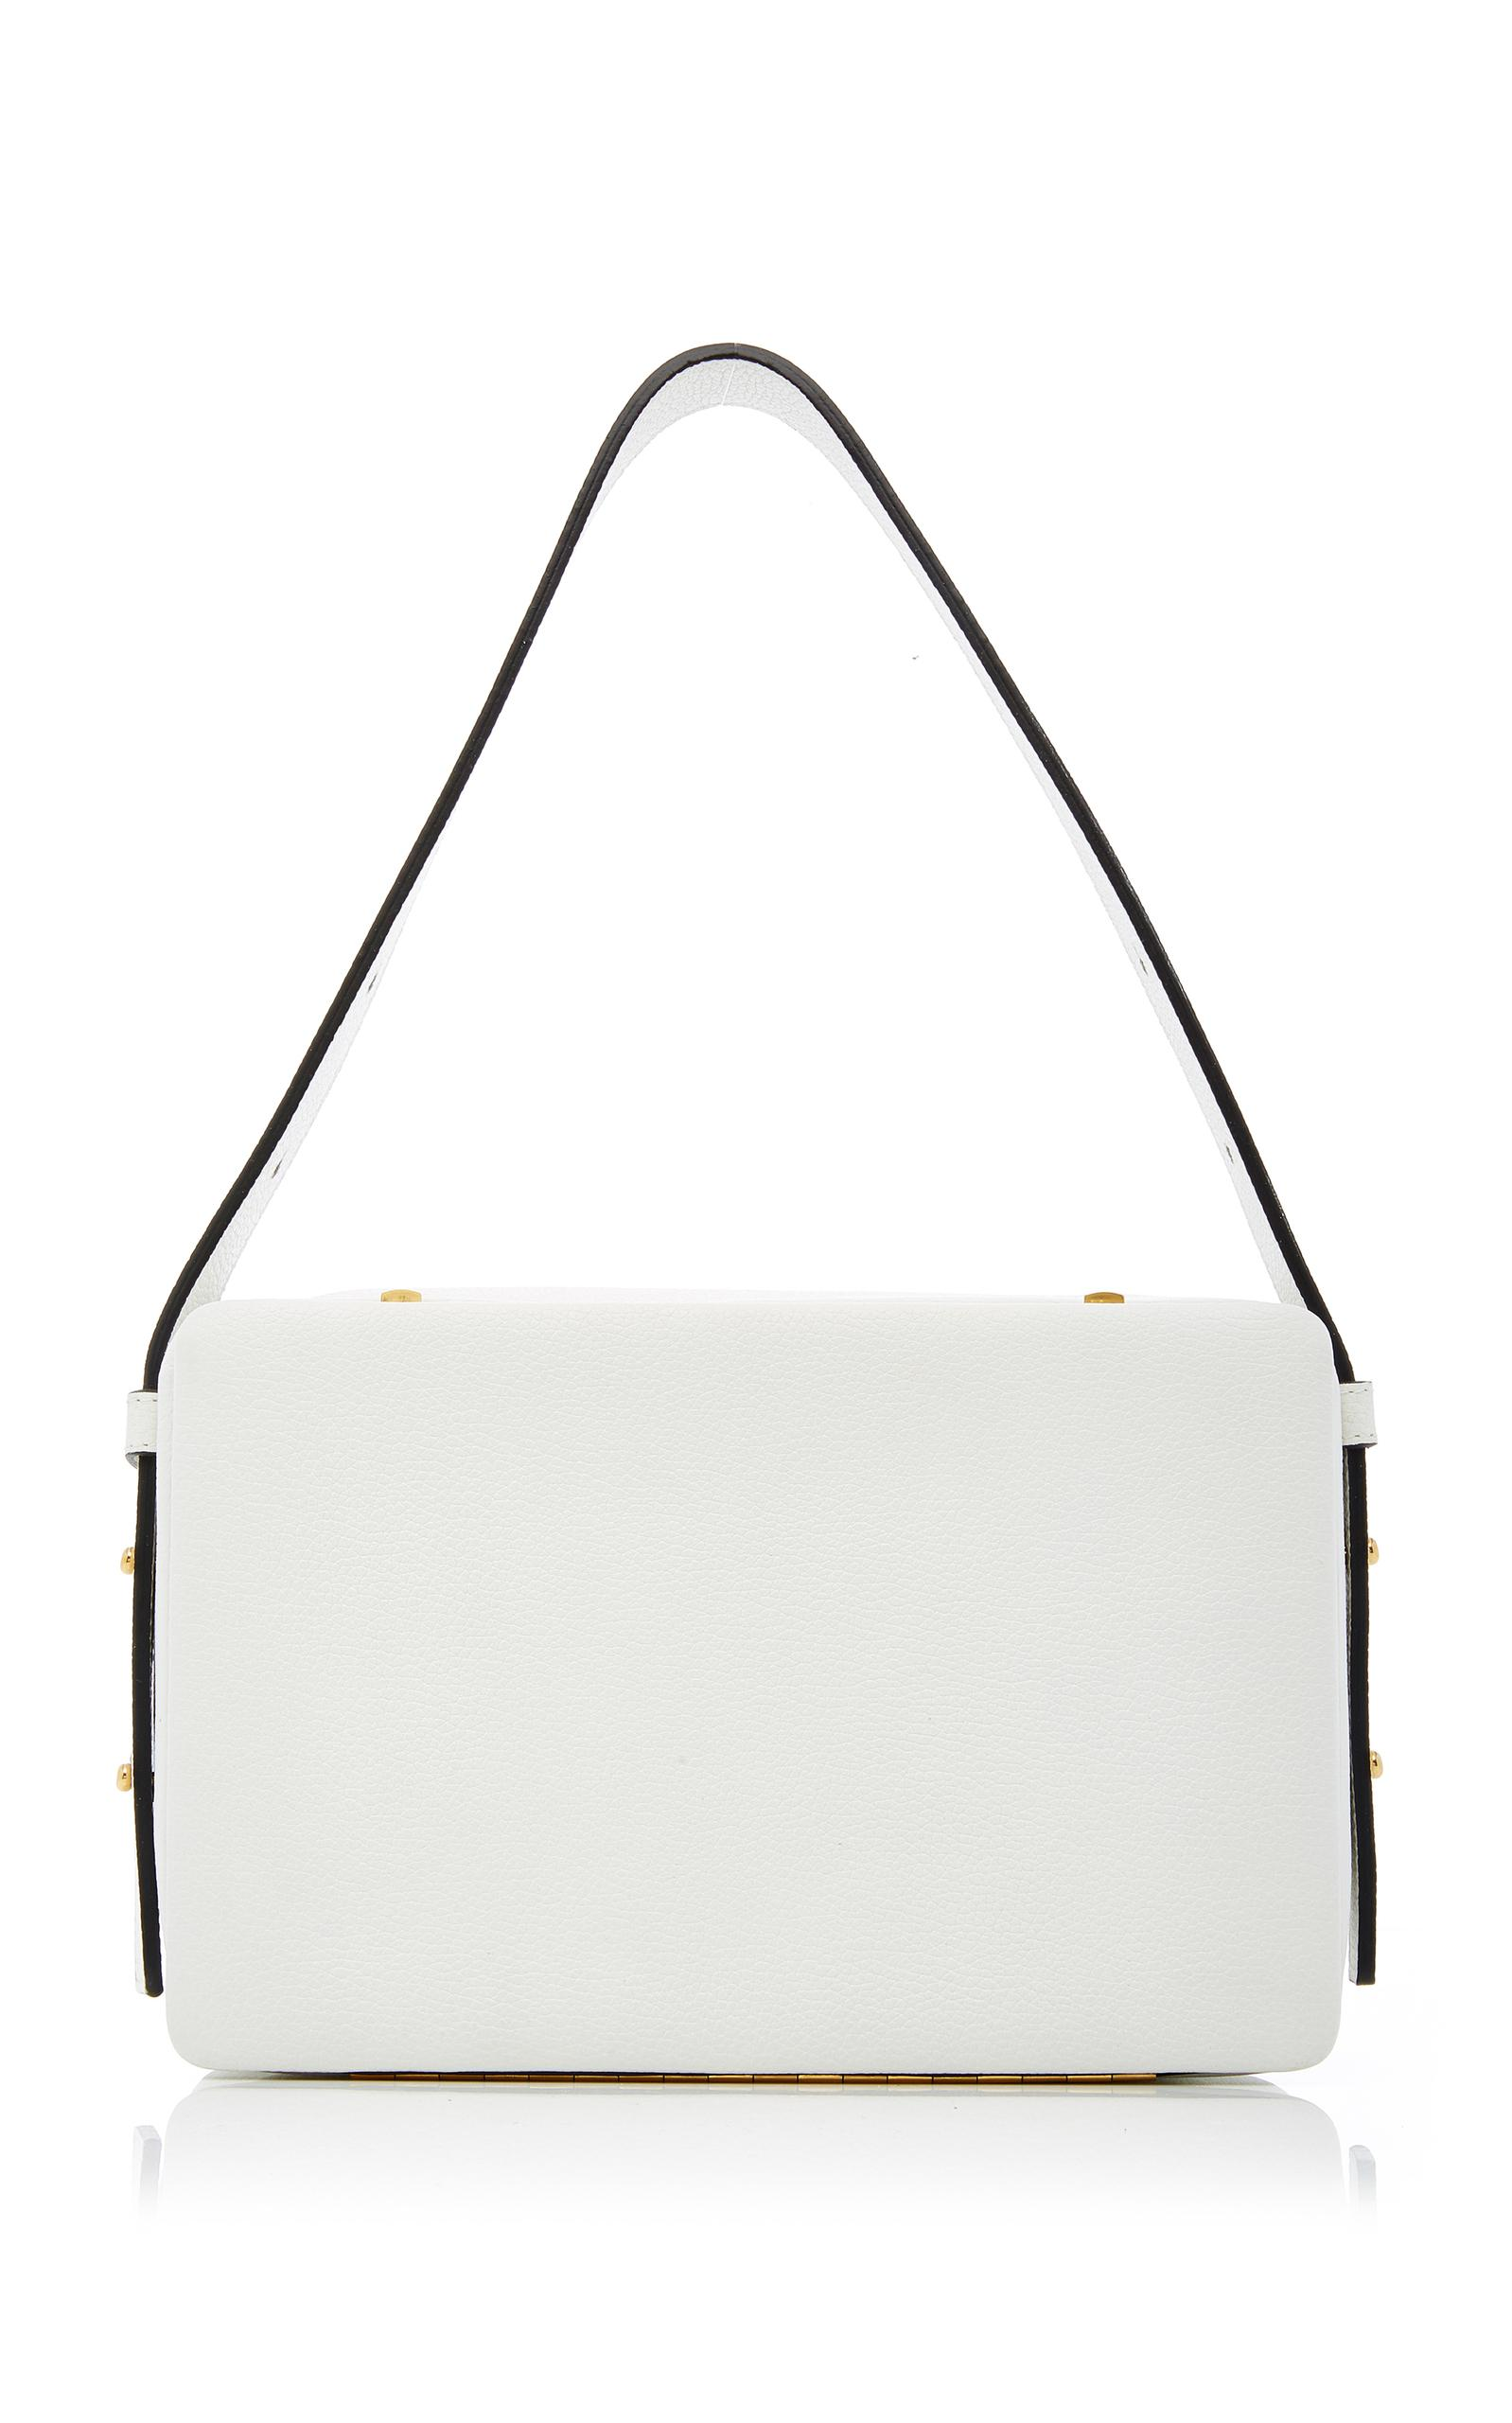 Lutz Strass Lutz Morris Tate Large Shoulder Bag In White Lyst